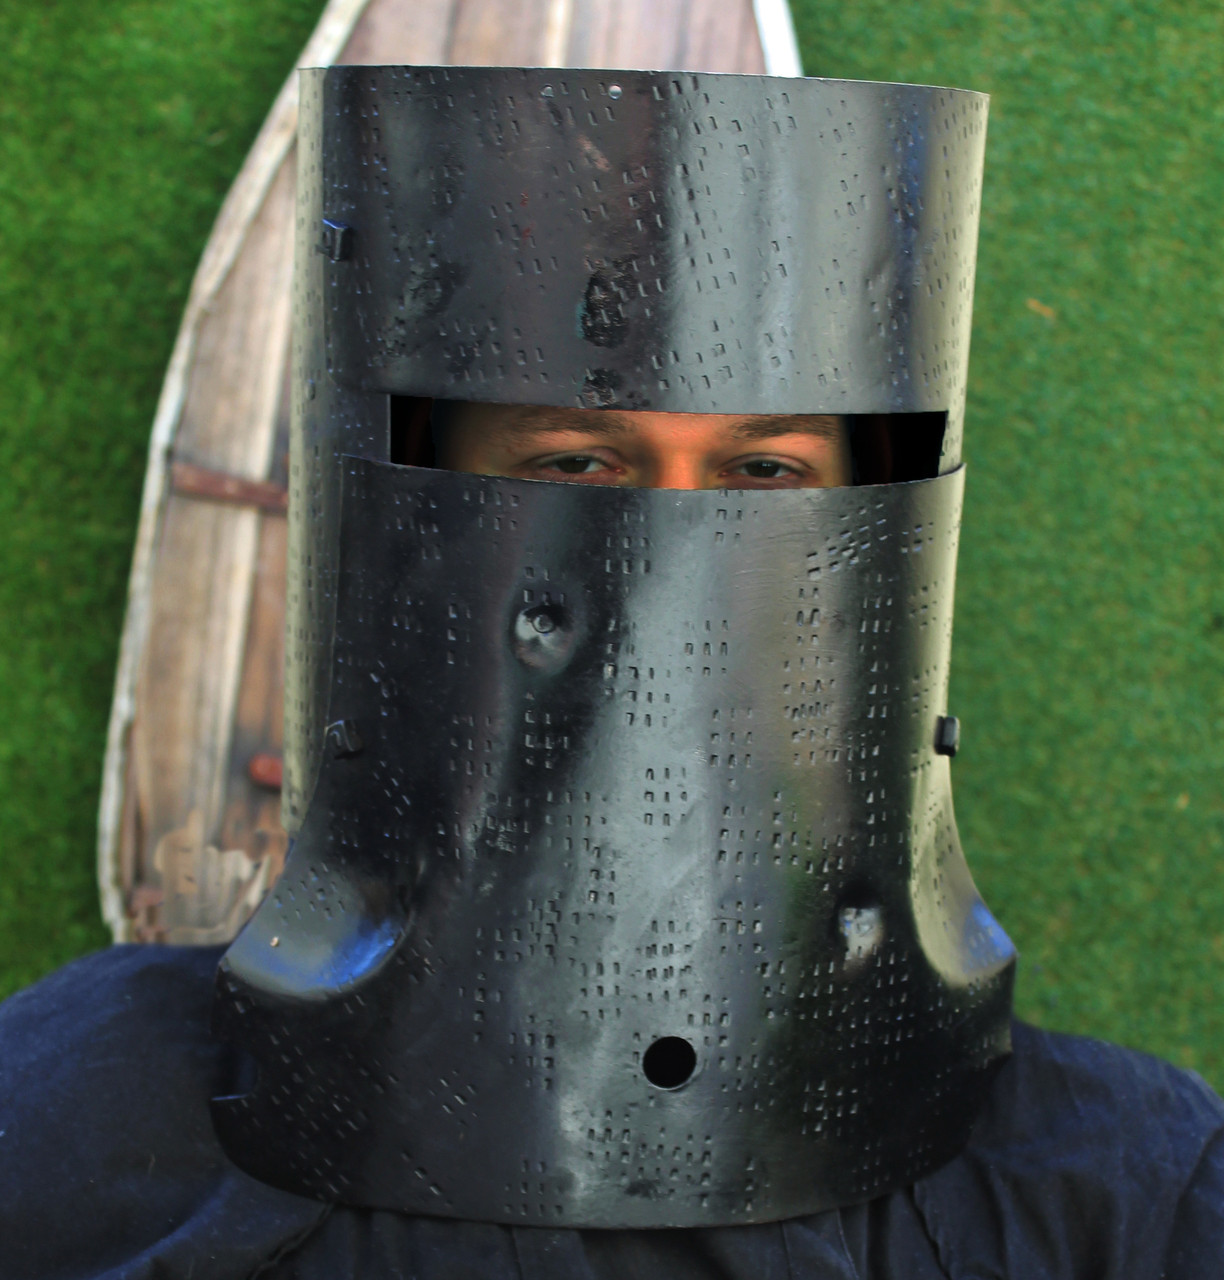 Wearable NED KELLY helmet